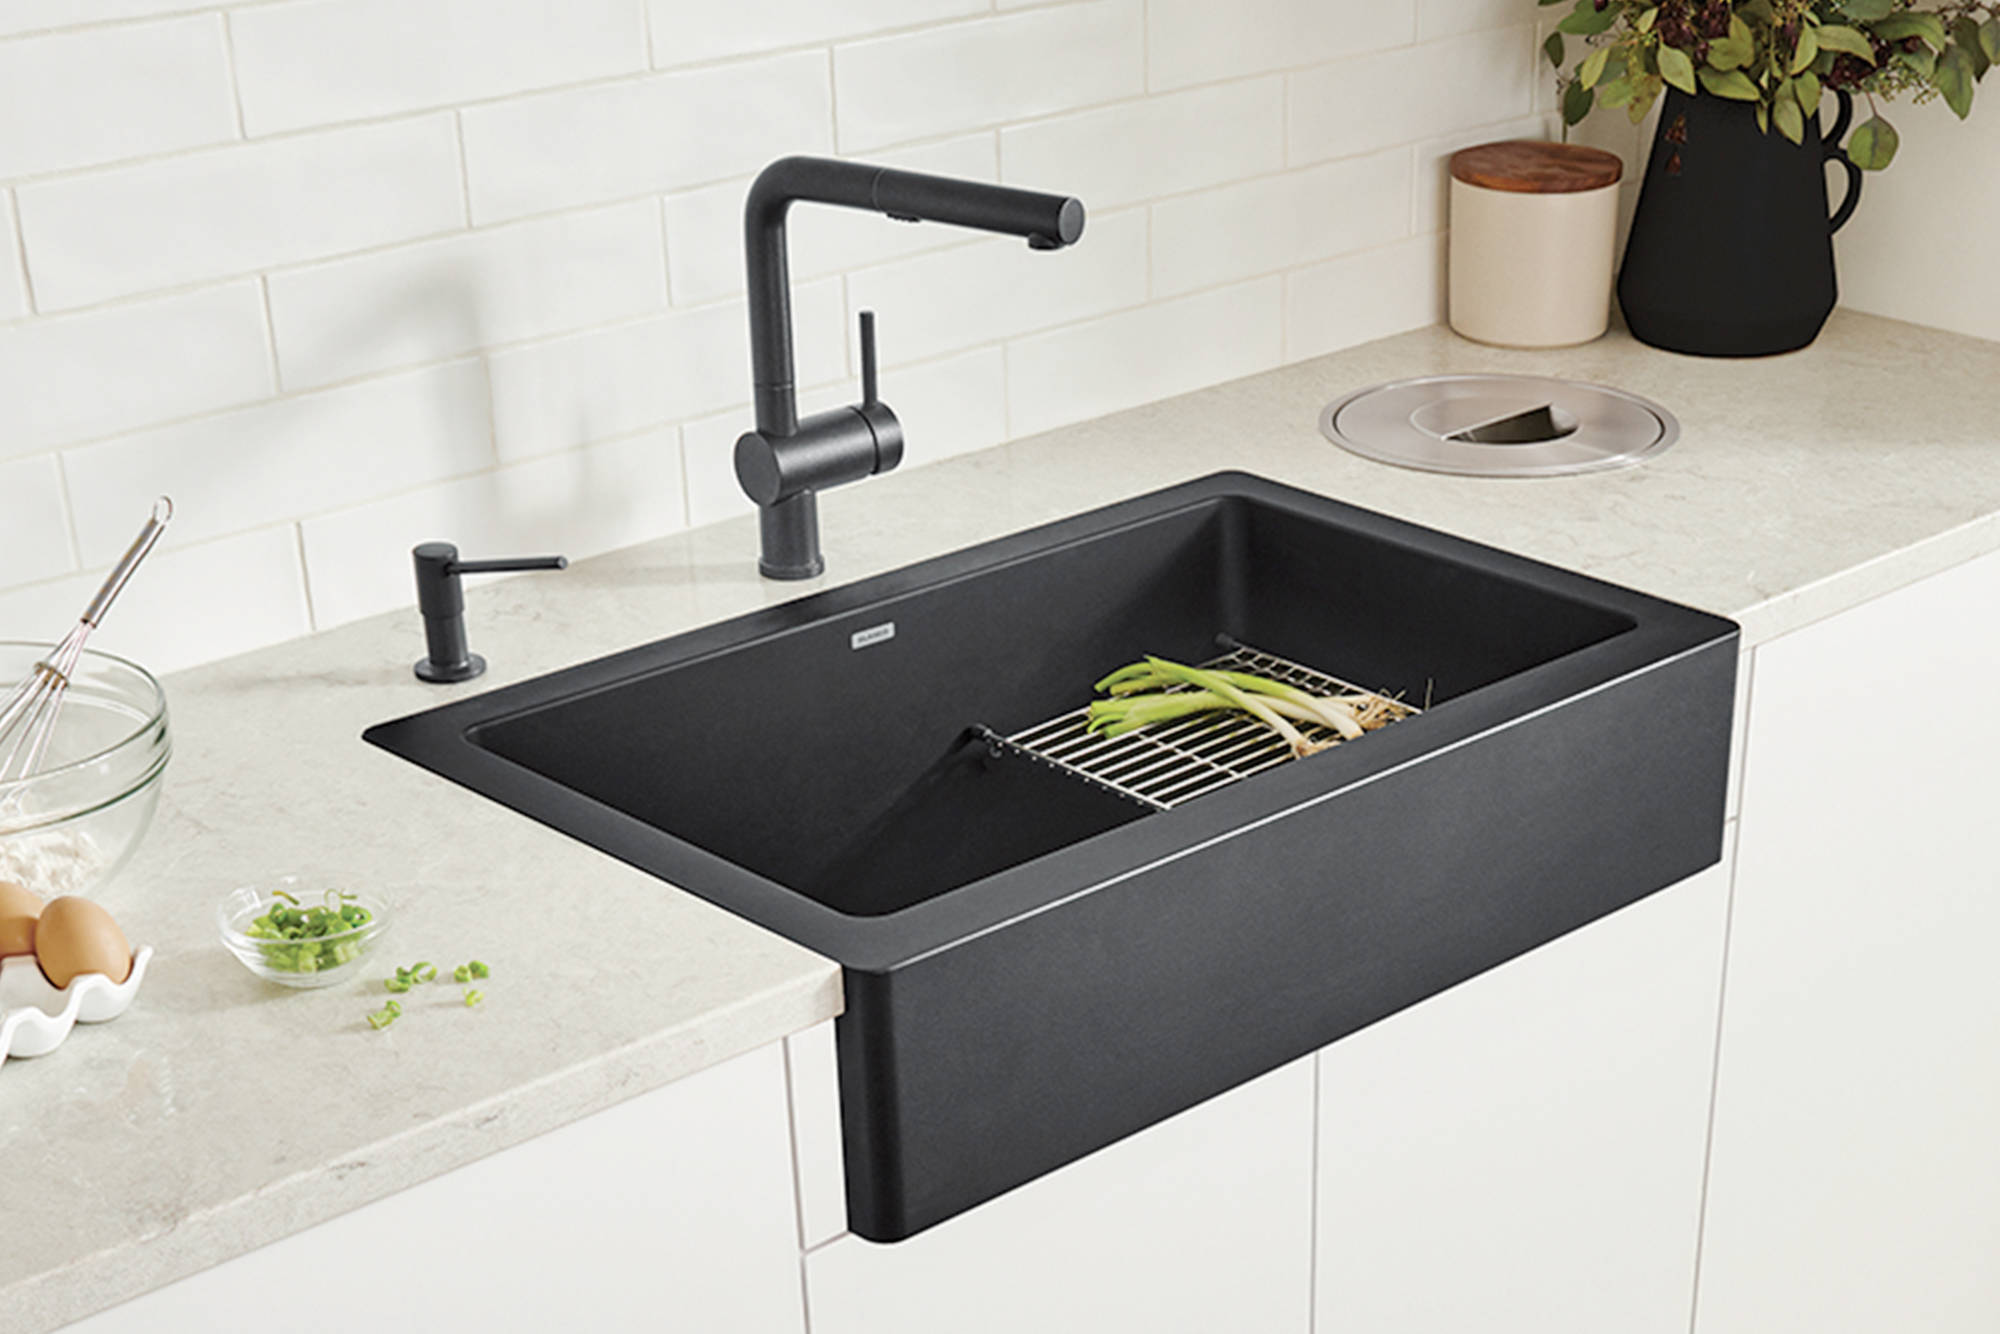 The VINTERA farmhouse kitchen sink collection is available in an array of colours, including concrete grey, truffle and coal black.